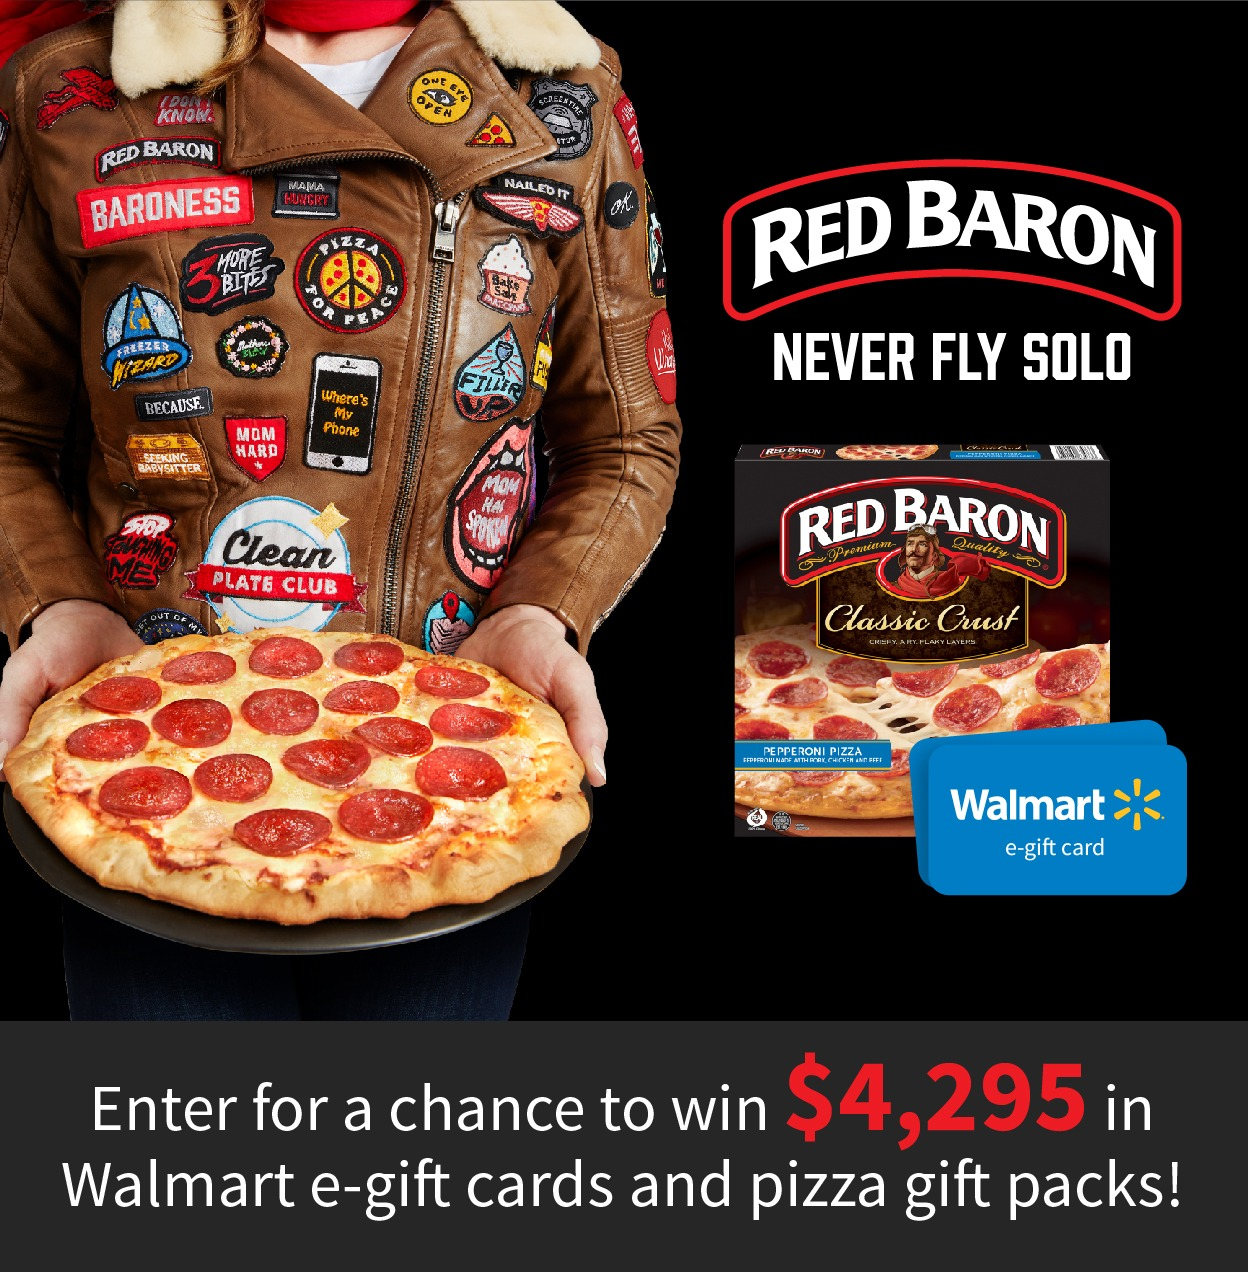 Red Baron #BaronessPatches Sweepstakes